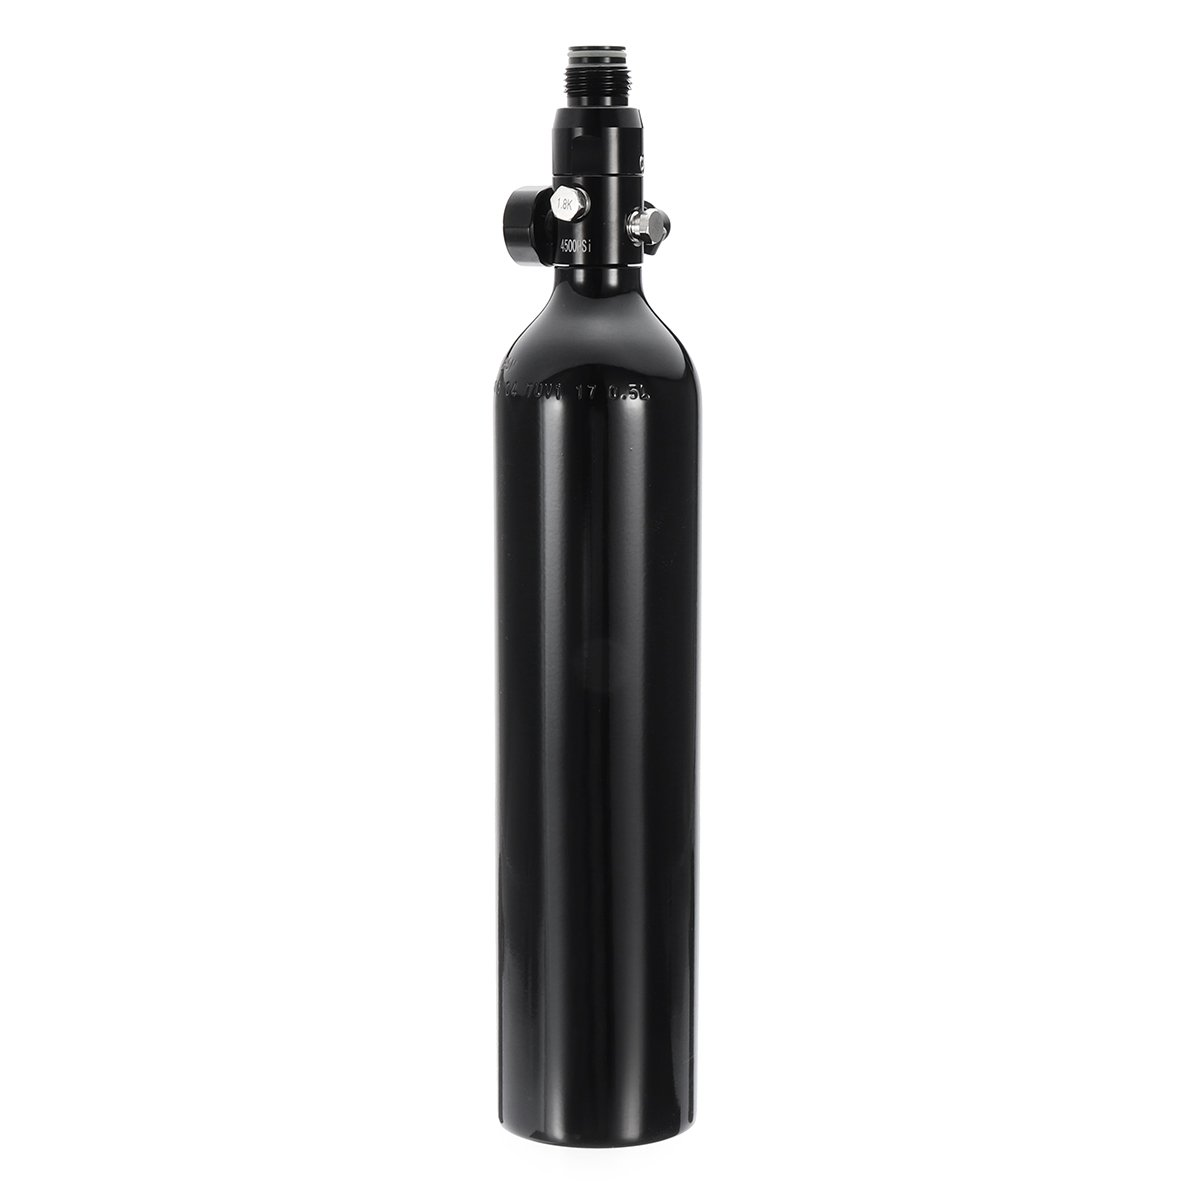 0.5L Liter Aluminum Tank Air Bottle With 4500 PSI Regulator For Paintball PCP by Ologymart (Image #1)